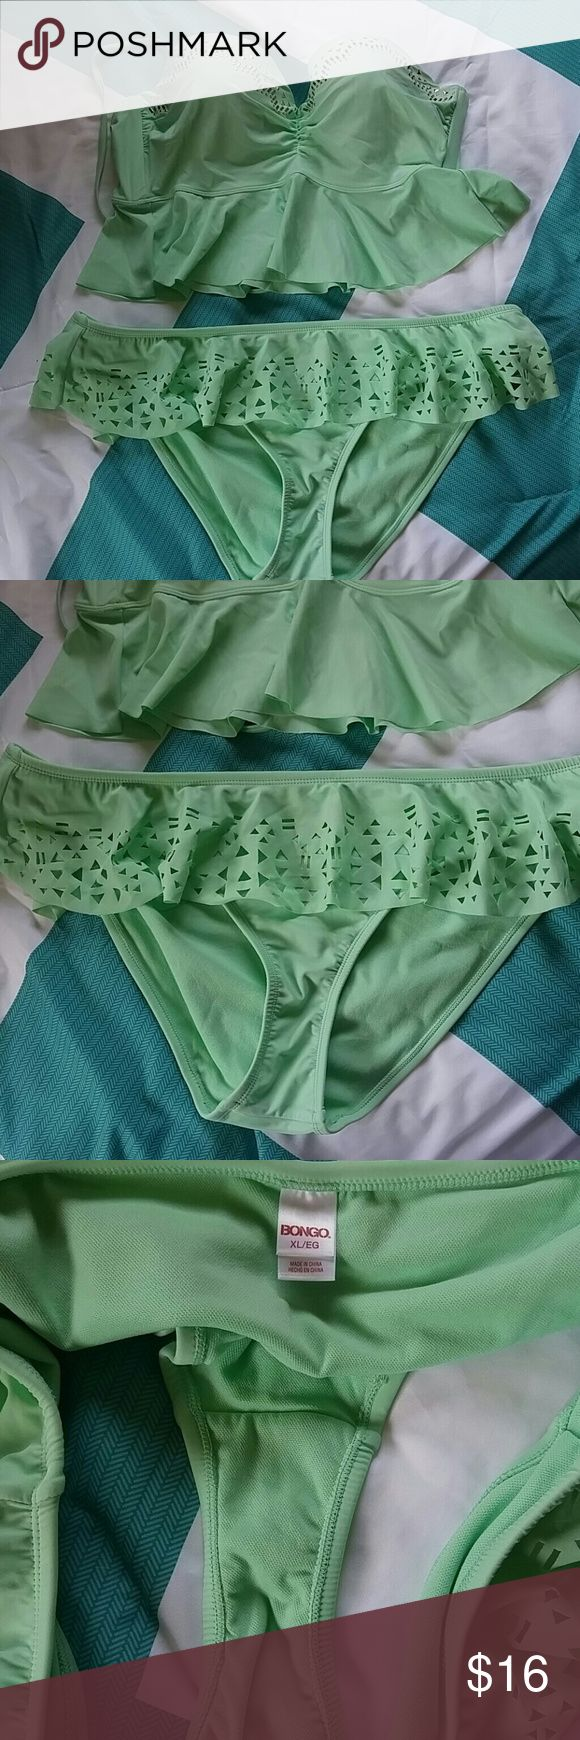 Bongo size XL mint green bikini Size XL Bongo brand bikini. Hard cup bikini top ties around the neck period ruffle detailing at the bottom where it's a little wider great detailing around the top. Ruffle on the bottom of the bikinis with cut-out design. The color is a mint bluish-green period no holes no tears no stains only worn twice ready to sell no trades no low-ball offers BONGO Swim Bikinis